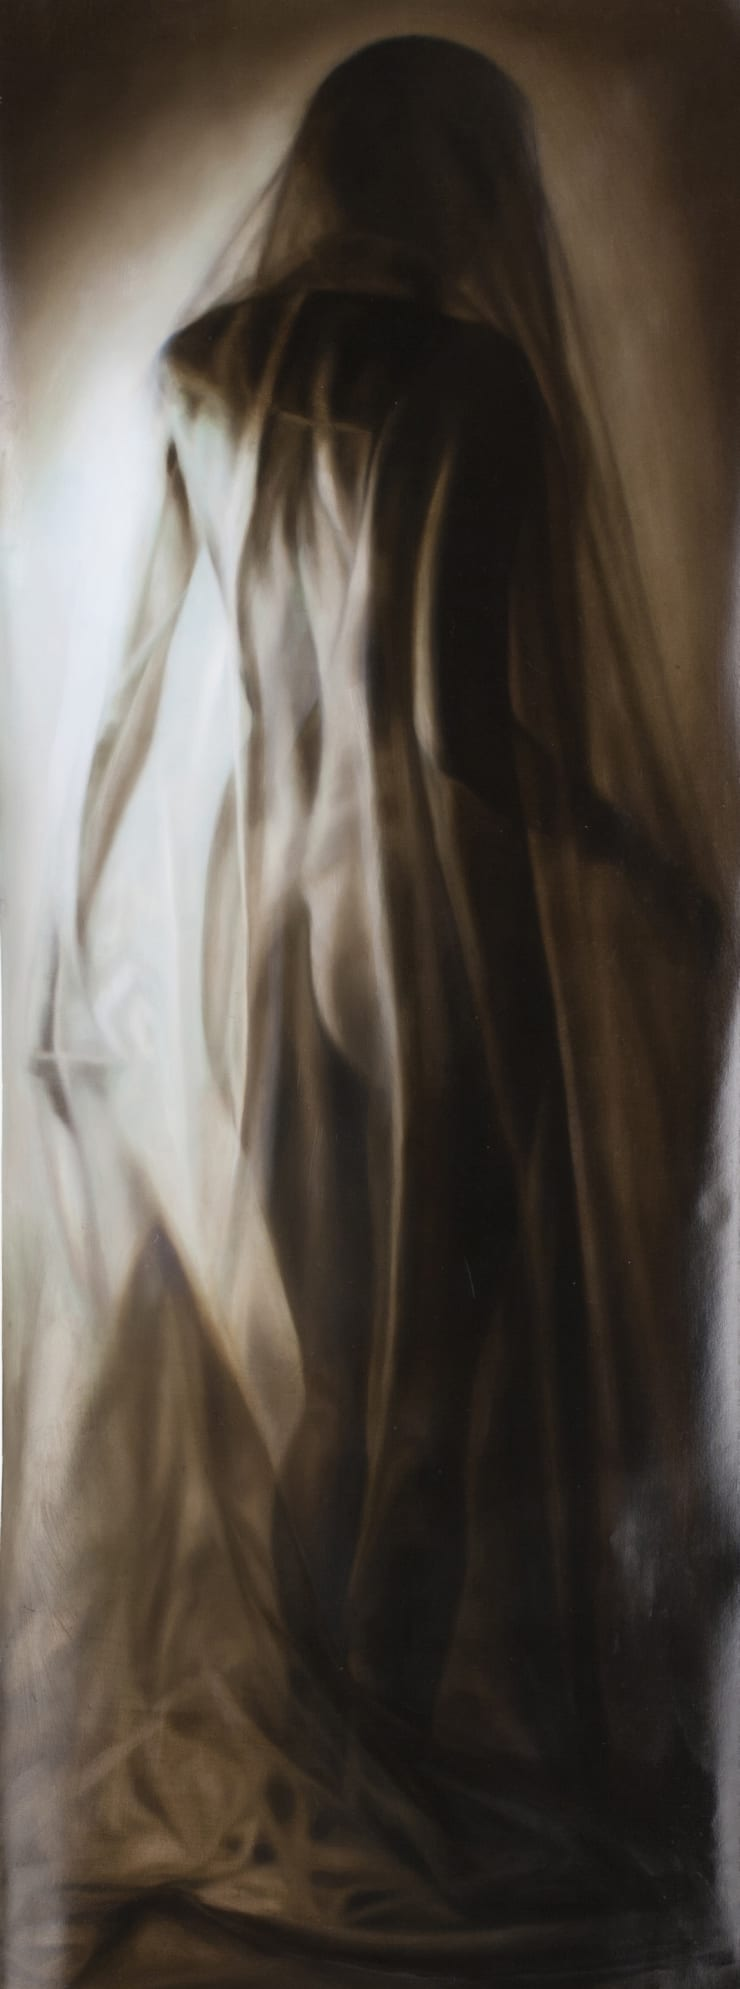 Elisa Rossi Comparse, 2017 Oil on paper 200 x 75 cm 78.7 x 29.5 in